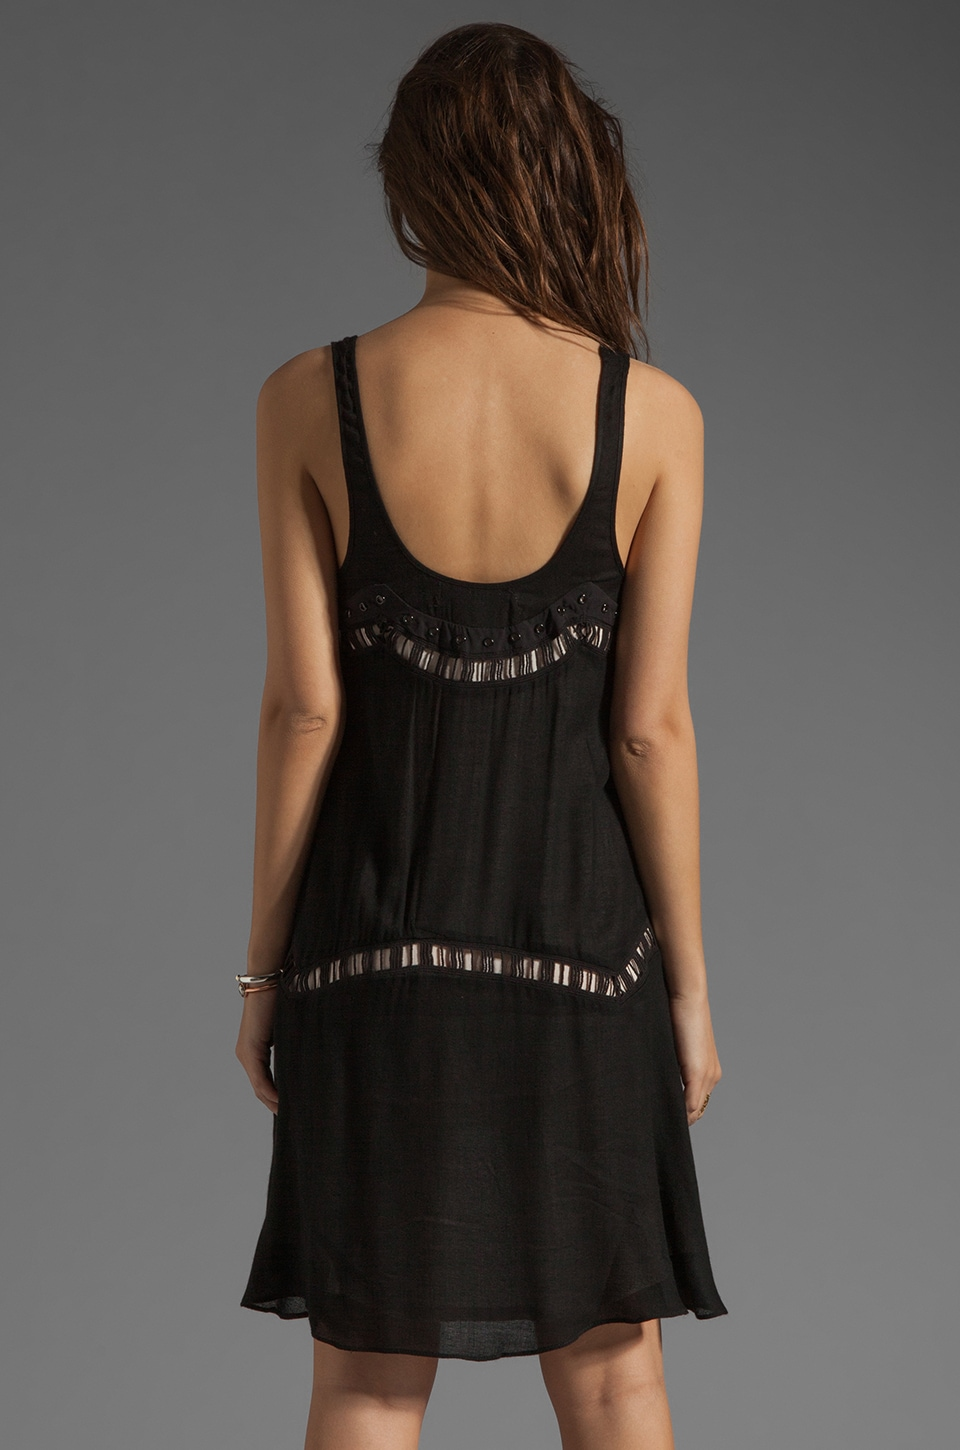 bless'ed are the meek Straight To The Point Dress in Black